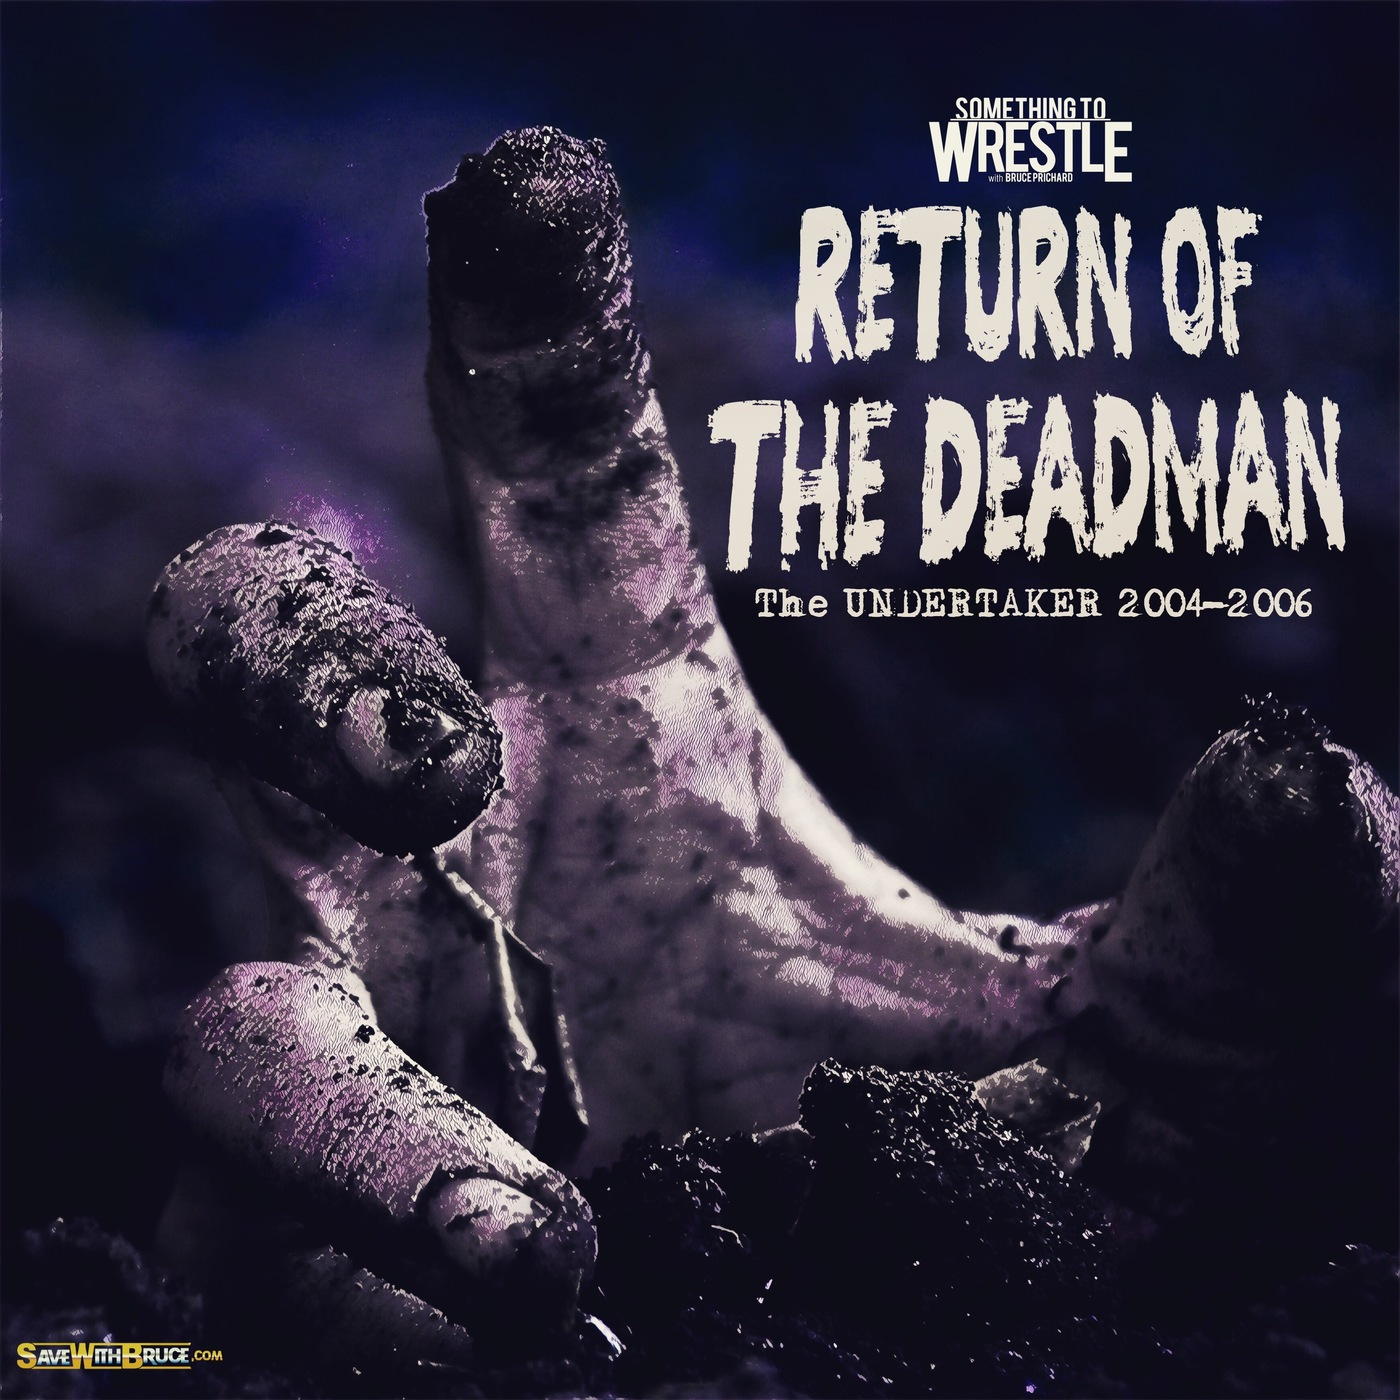 Episode 143: The Undertaker 2004-2006